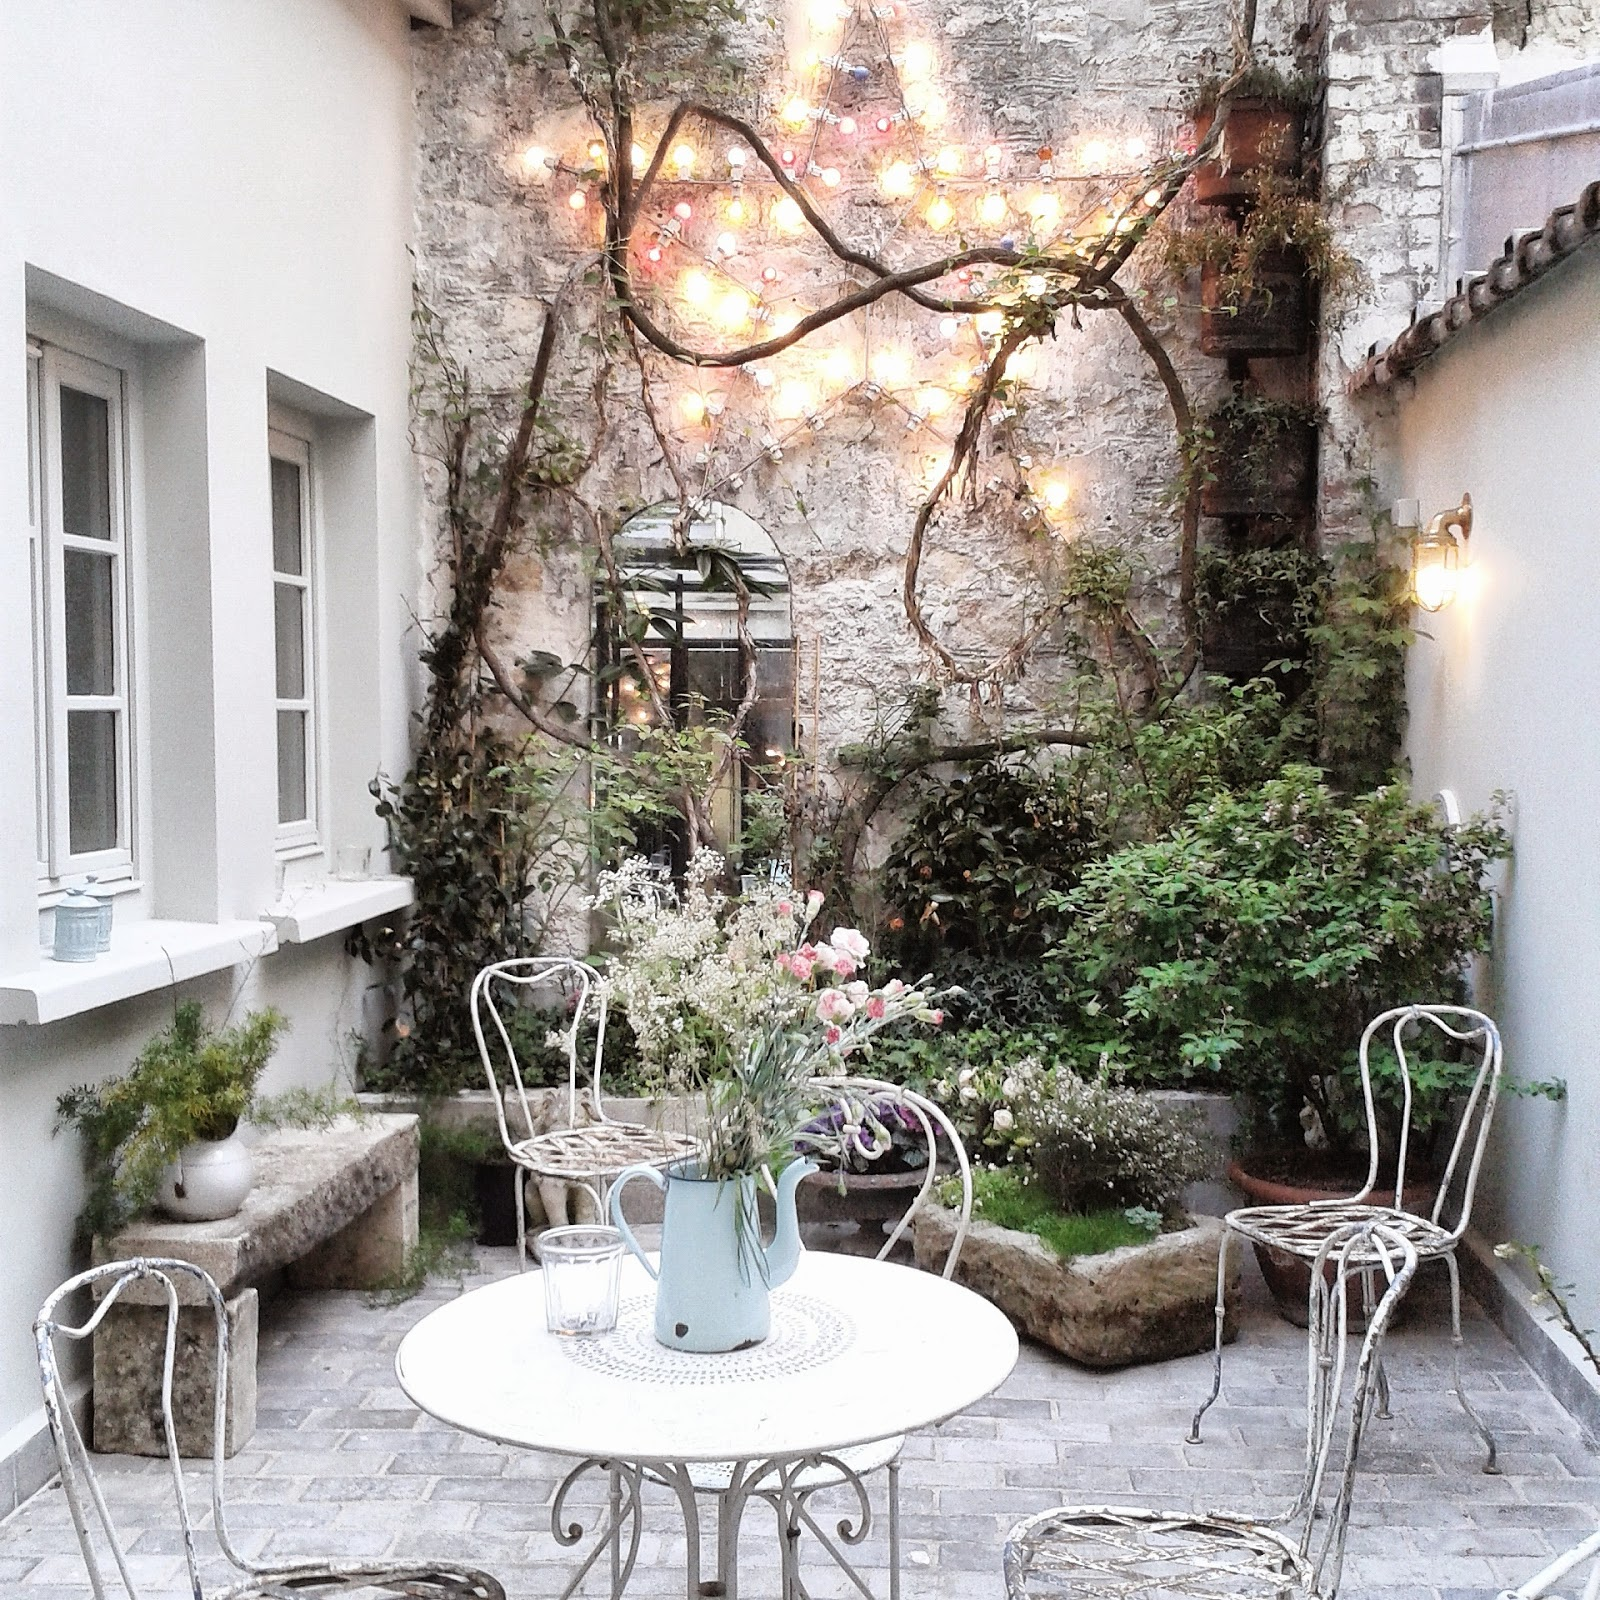 Hôtel Henriette Paris / Photos Atelier rue verte / Le patio